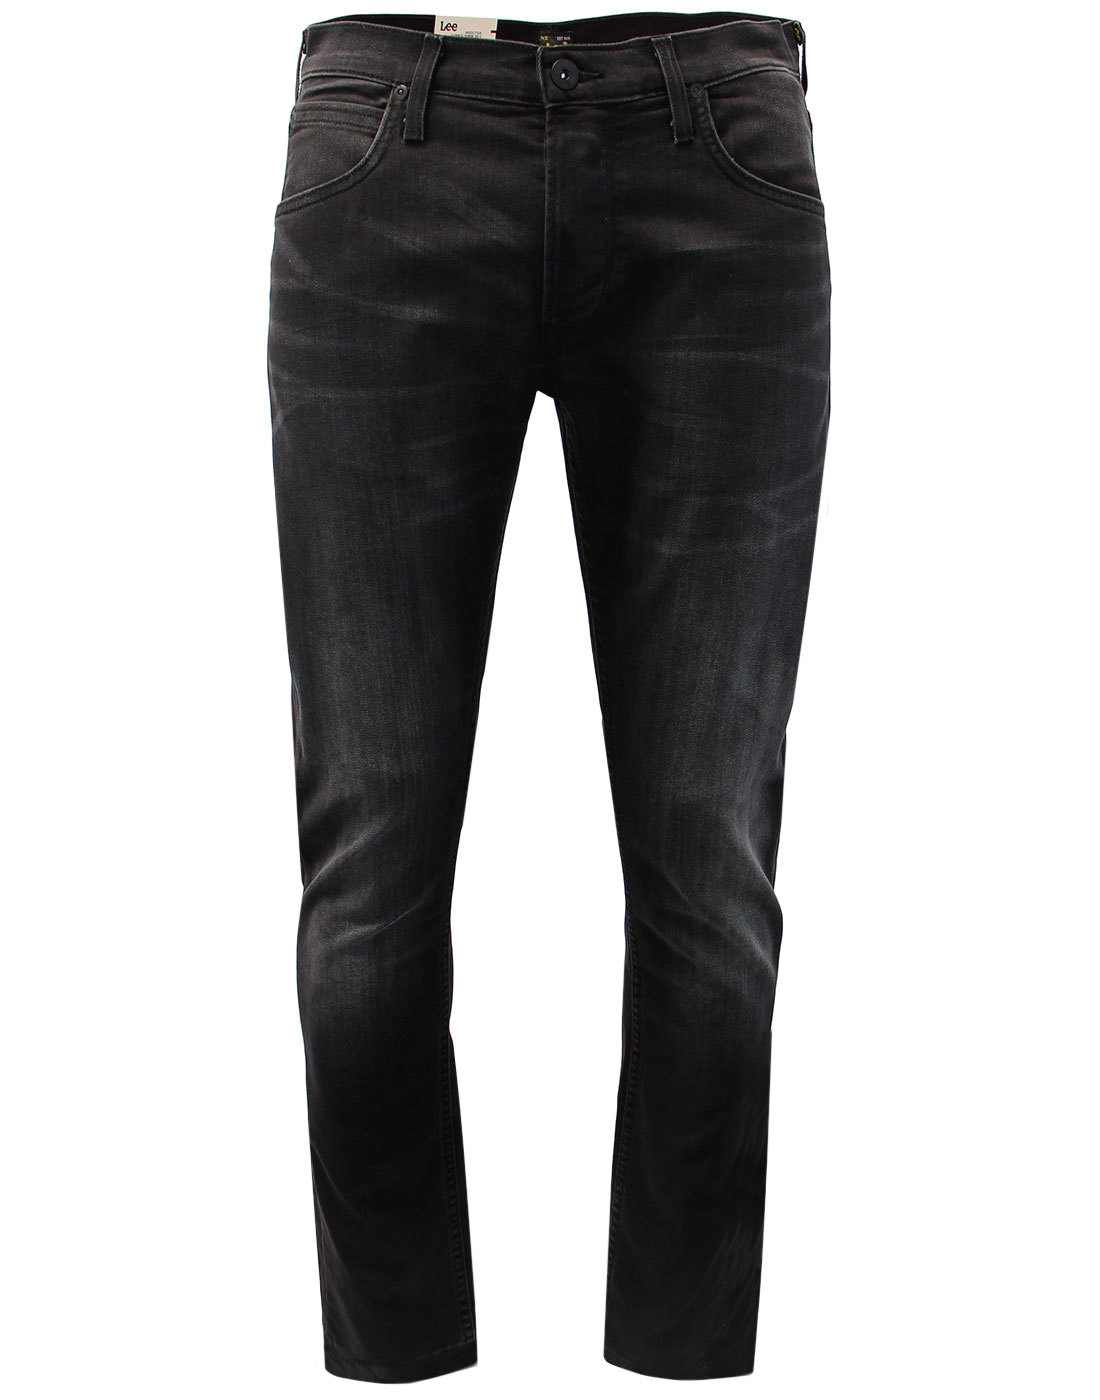 Daren LEE Mod Regular Slim Indigo Denim Jeans (BF)